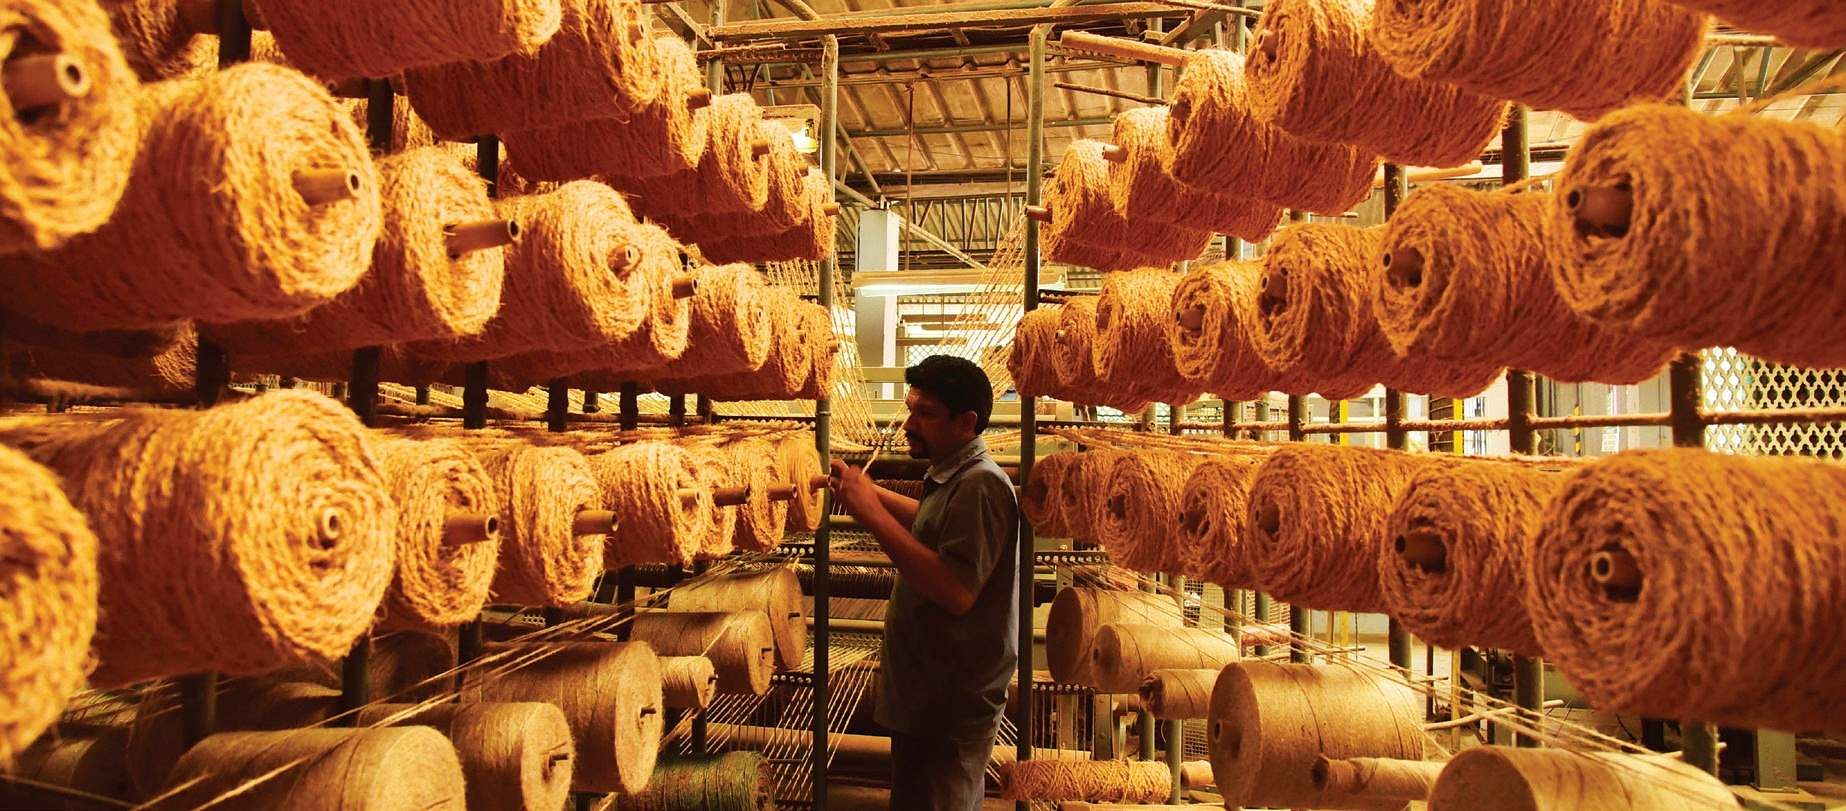 Future of coir industry in Kerala hangs by a thread- The New Indian